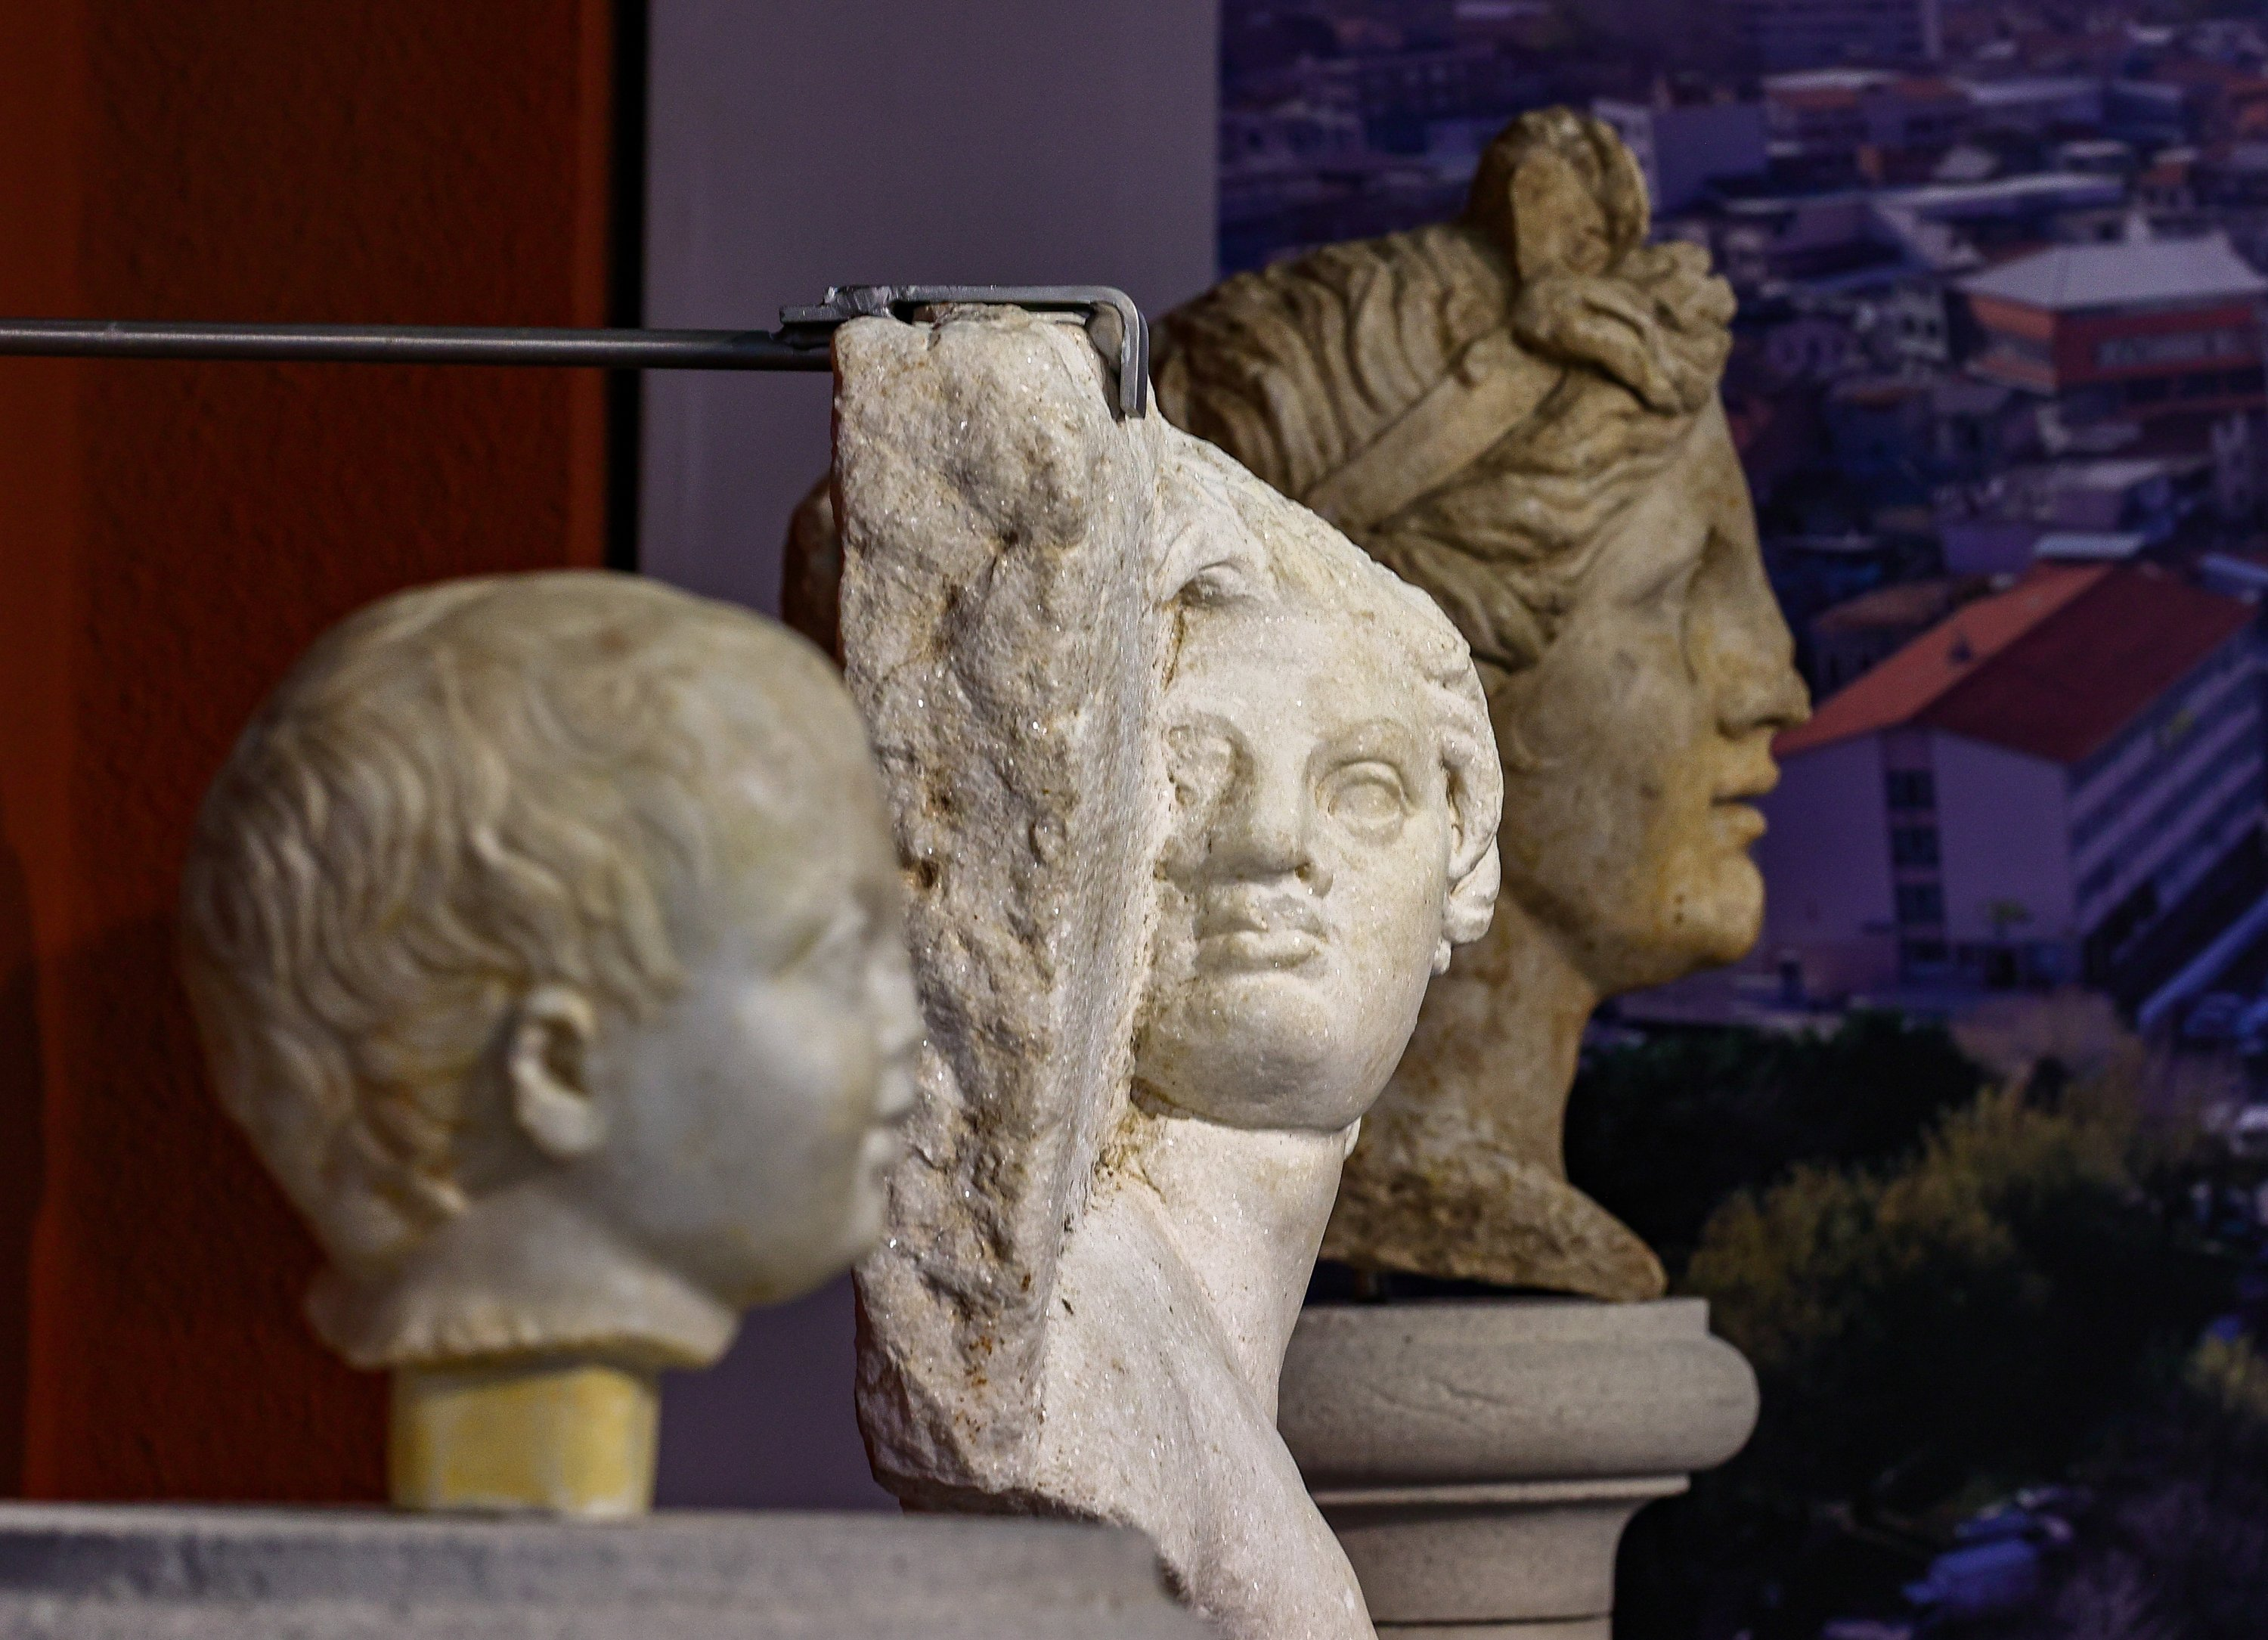 A baby head (L), the satyr relief (C) and the head of a woman, which was the first statue found in Smyrna, on display at Izmir Archaeological Museum, Izmir, western Turkey, June 30, 2021. (AA Photo)